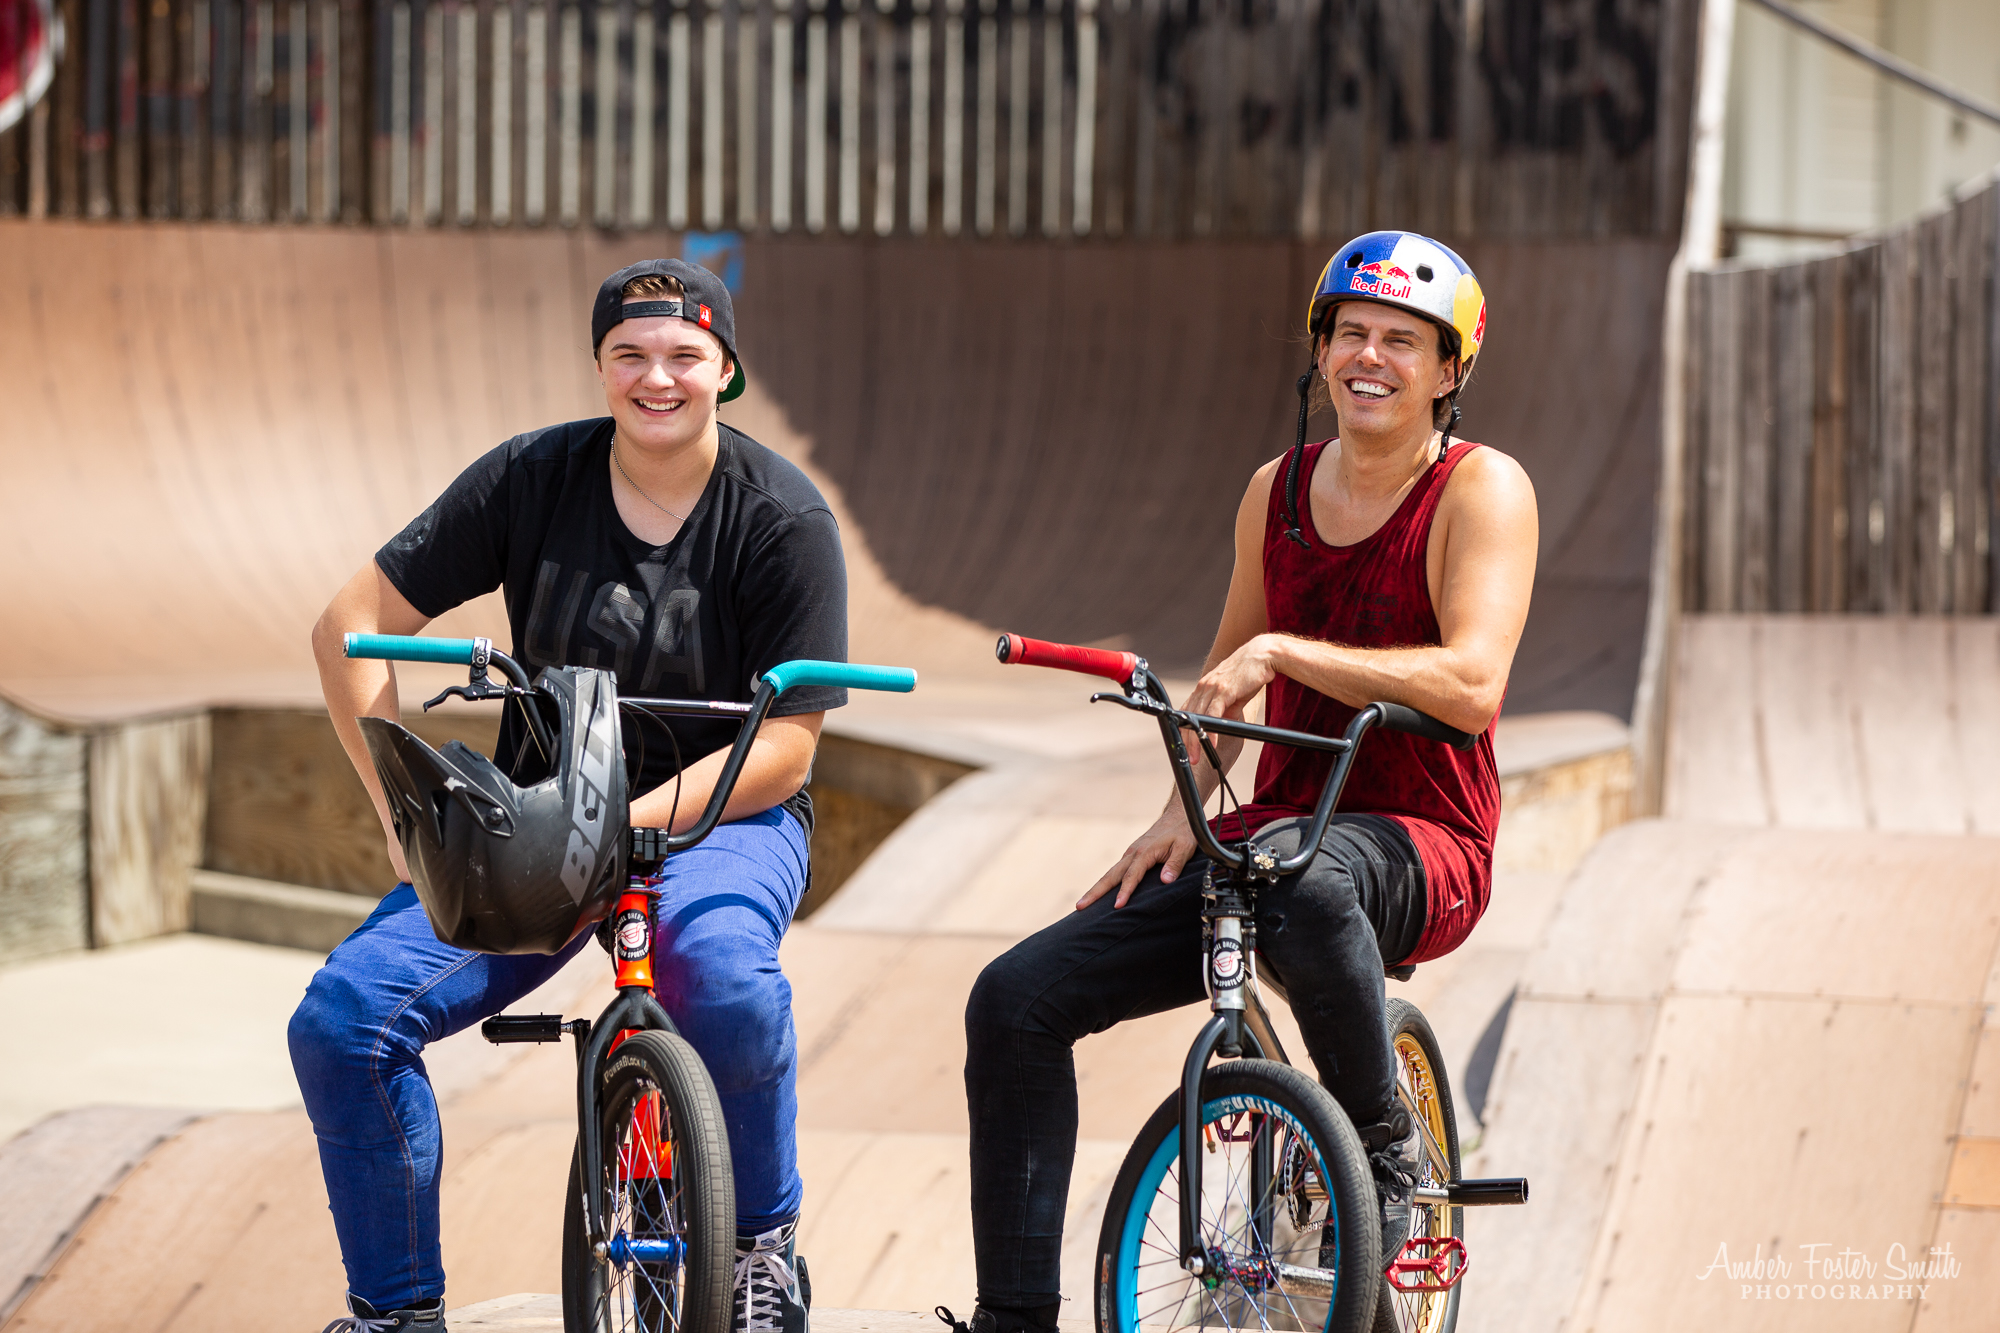 Man and woman sitting on bikes at a skate park